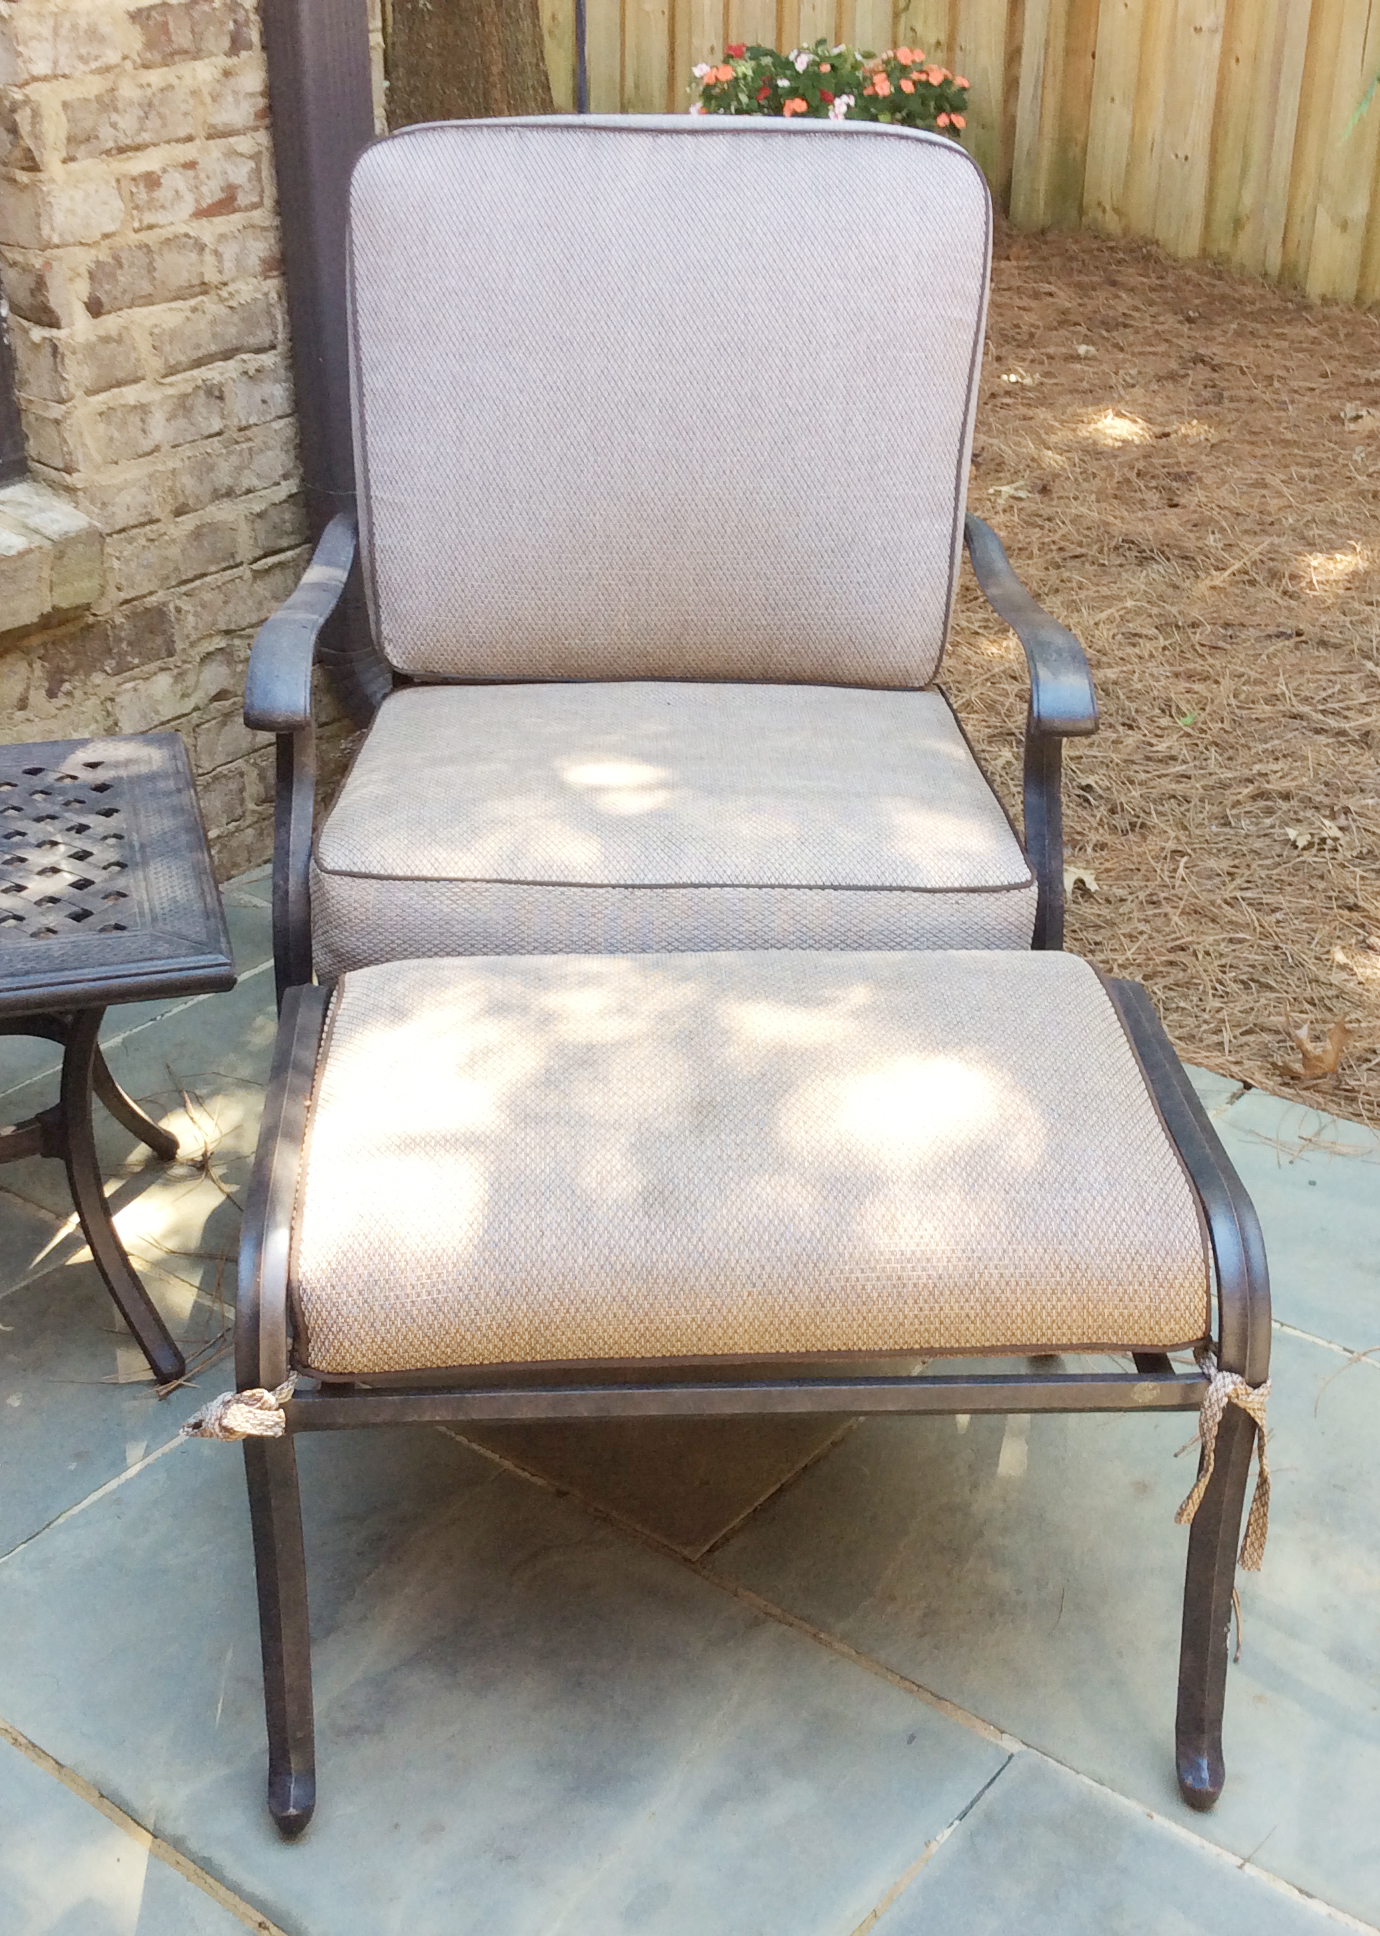 Bellingham Cushions for Dining chair Patio Furniture